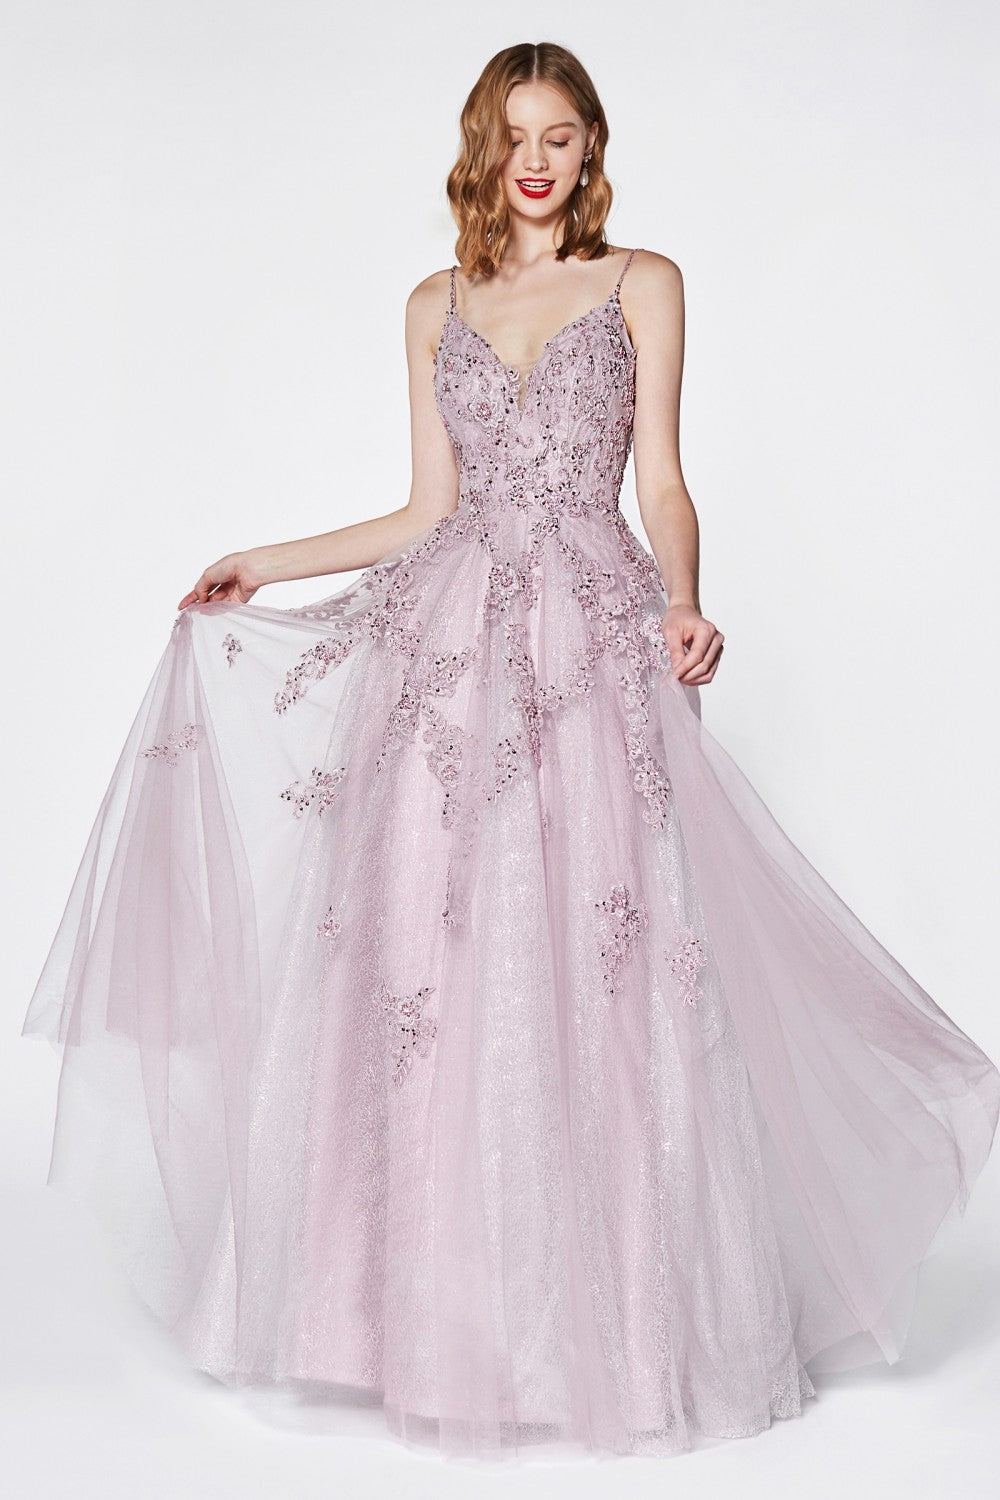 Beaded Flowy A-Line Tulle And Lace Dress With V-Neckline And Open Back